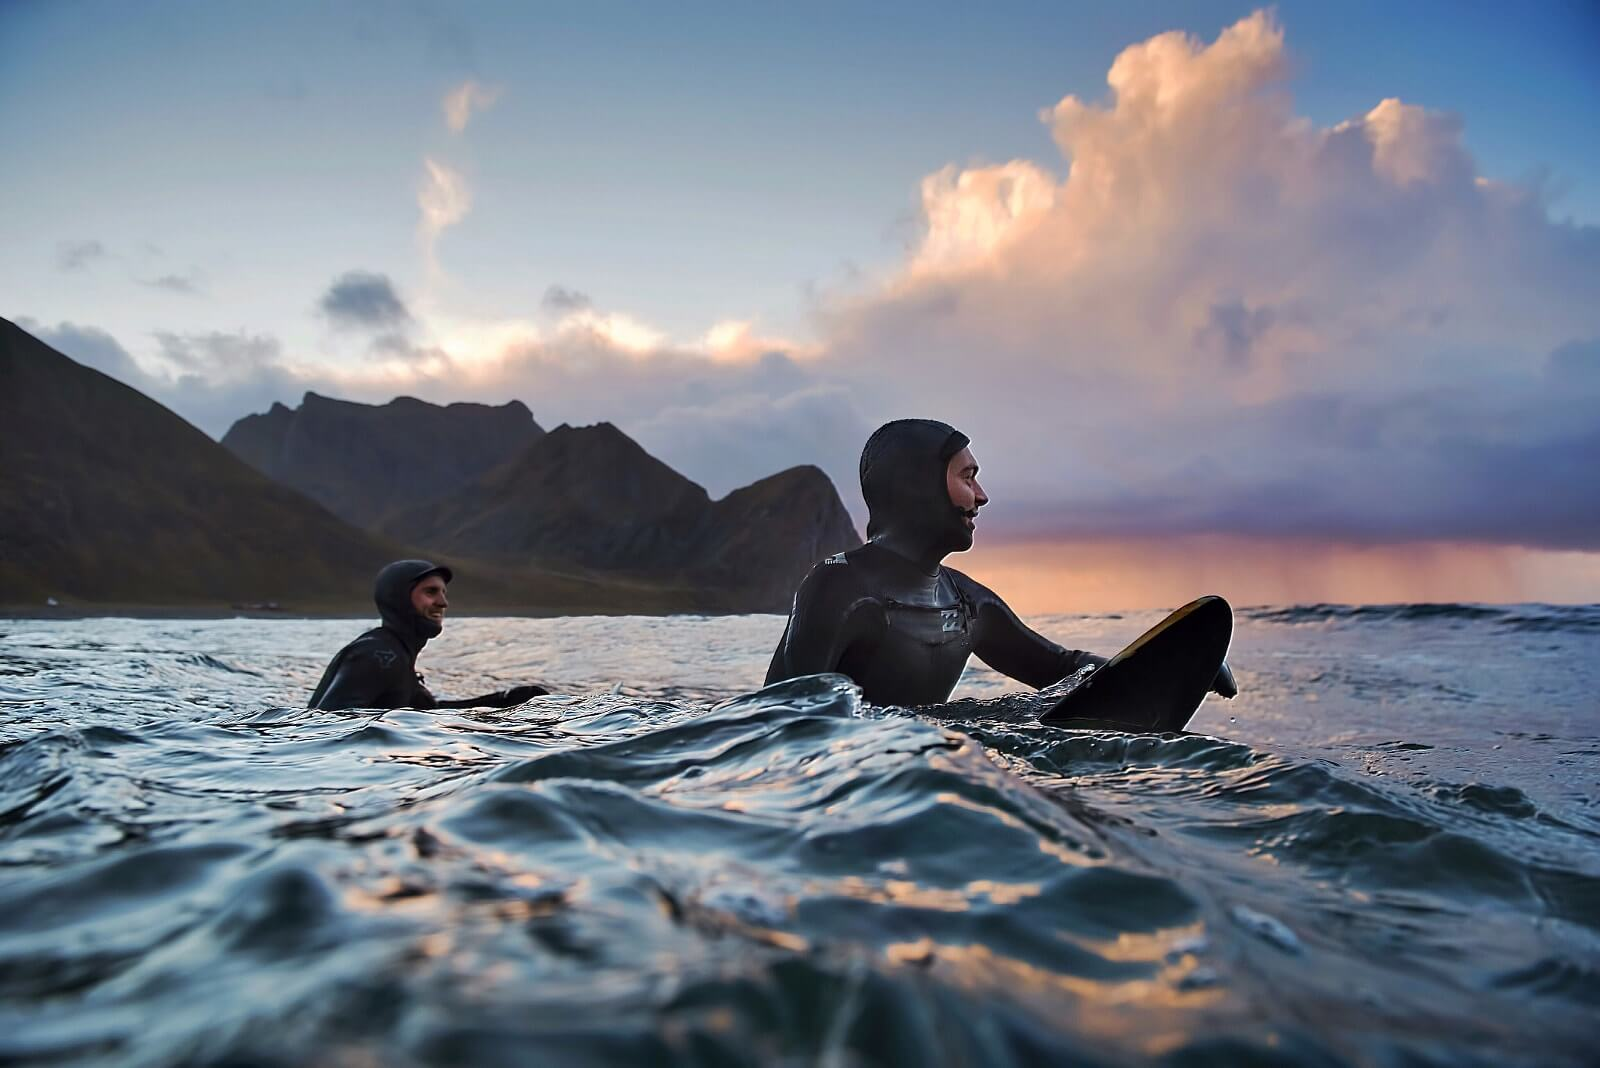 This photograph of surfers on 500px is an example of one selected for licensing through Adobe Stock.